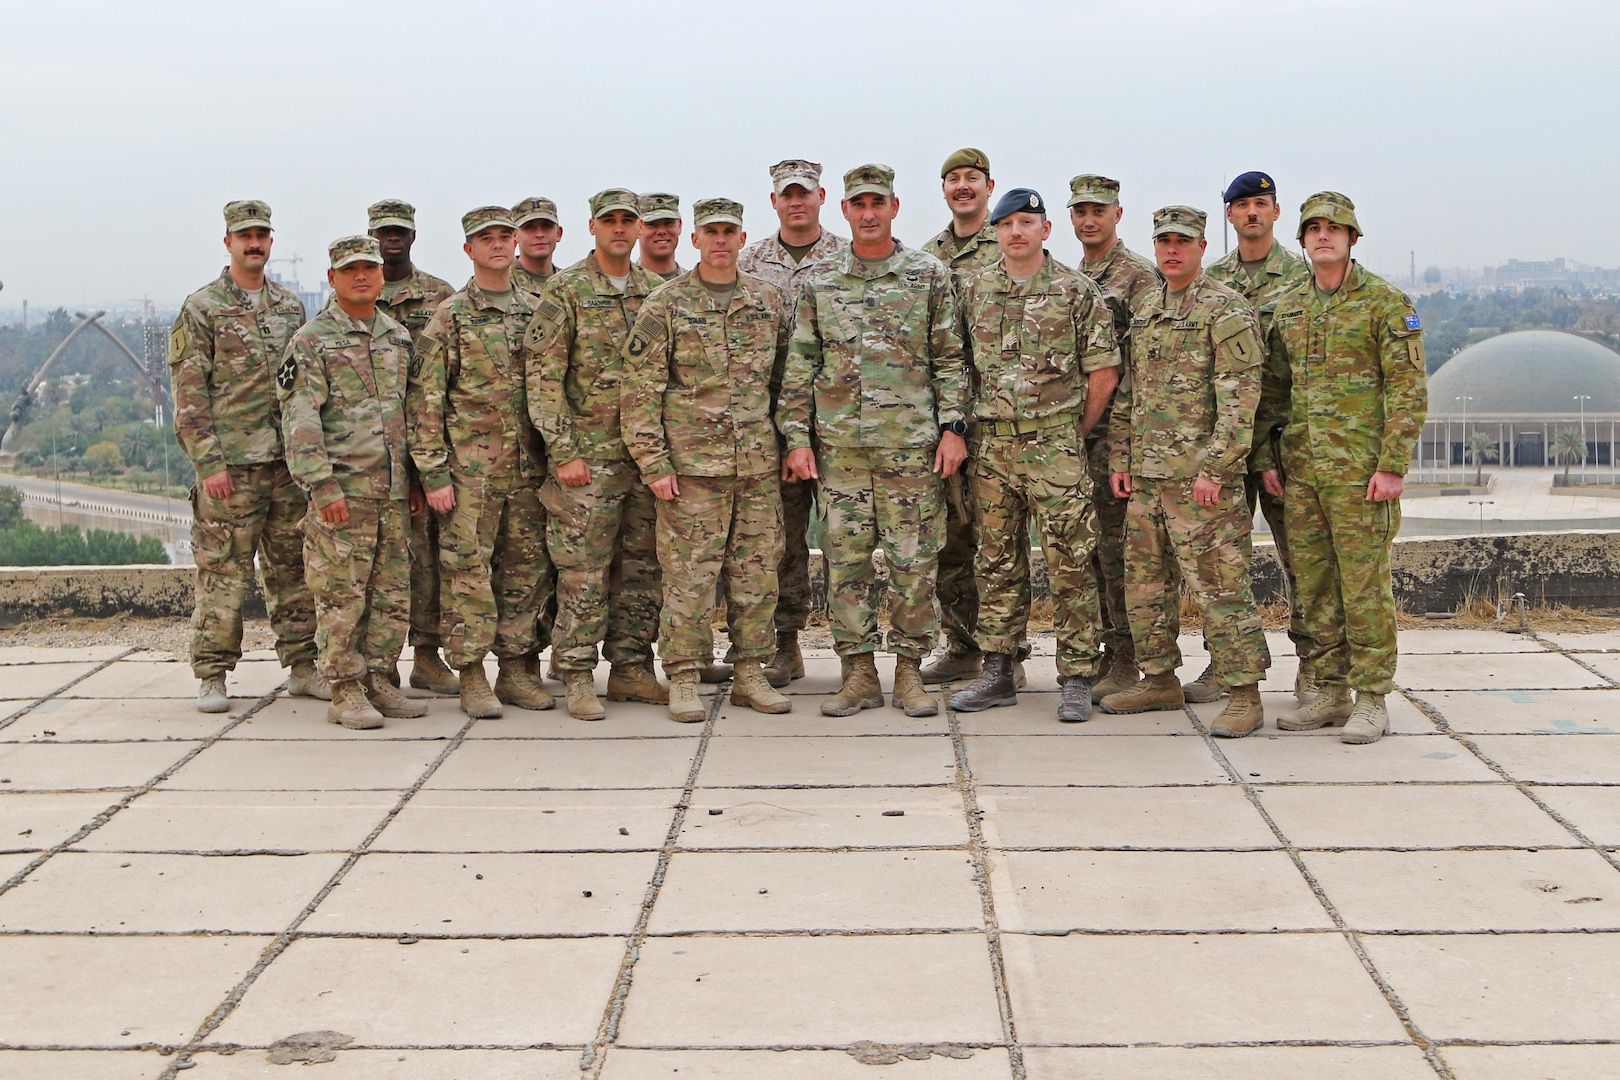 The Combined Joint Forces Land Component Command's Fires Team in Baghdad, Iraq on 30 Nov, 2016. The team works constantly to degrade ISIL across Iraq through lethal targeting to support the ISF maneuver plan through strikes. (Photo Credit: U.S. Army Sgt. Anna Pongo)